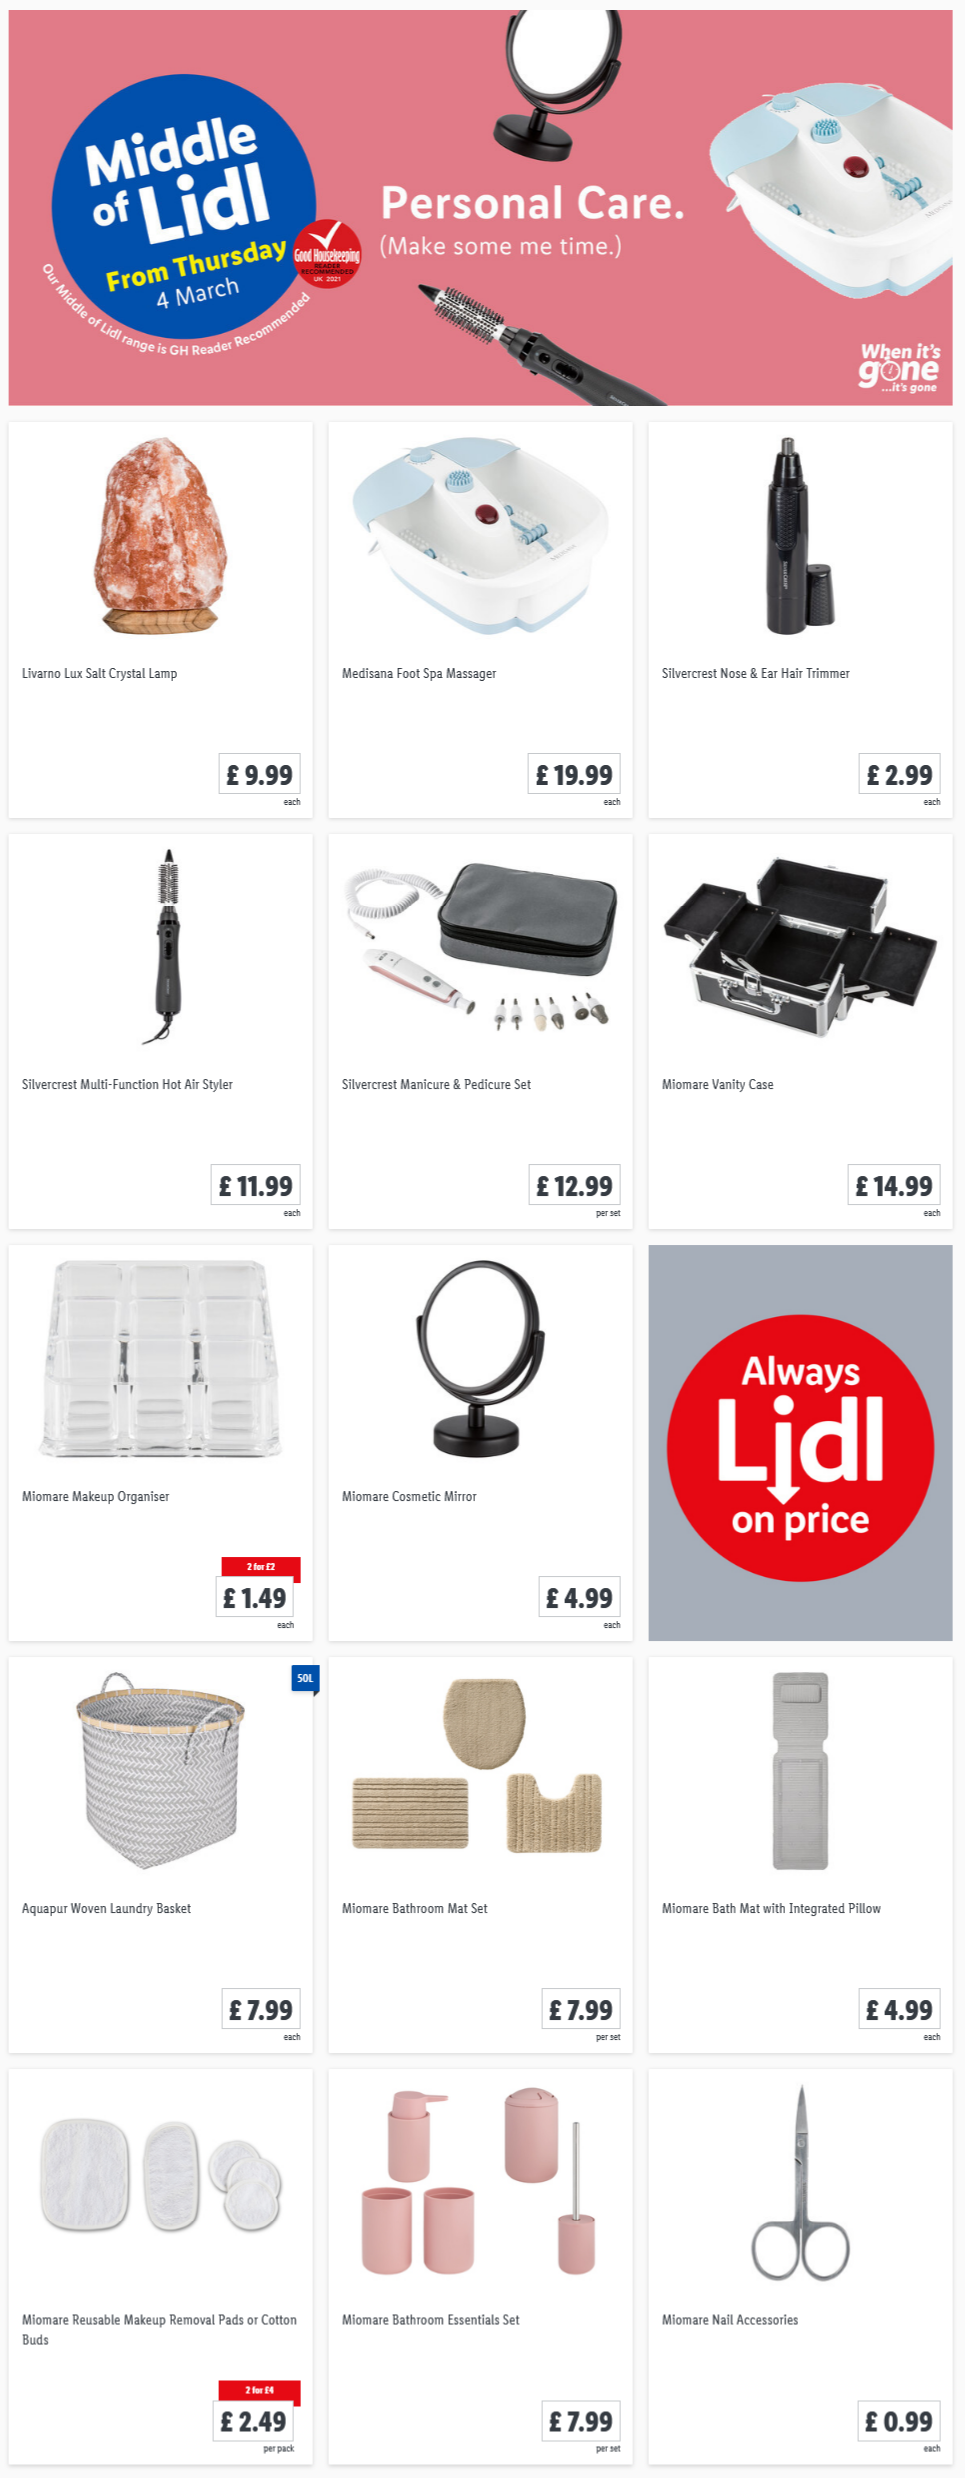 LIDL Offers this Thursday From 4th Maarch 2021 LIDL Personal Care